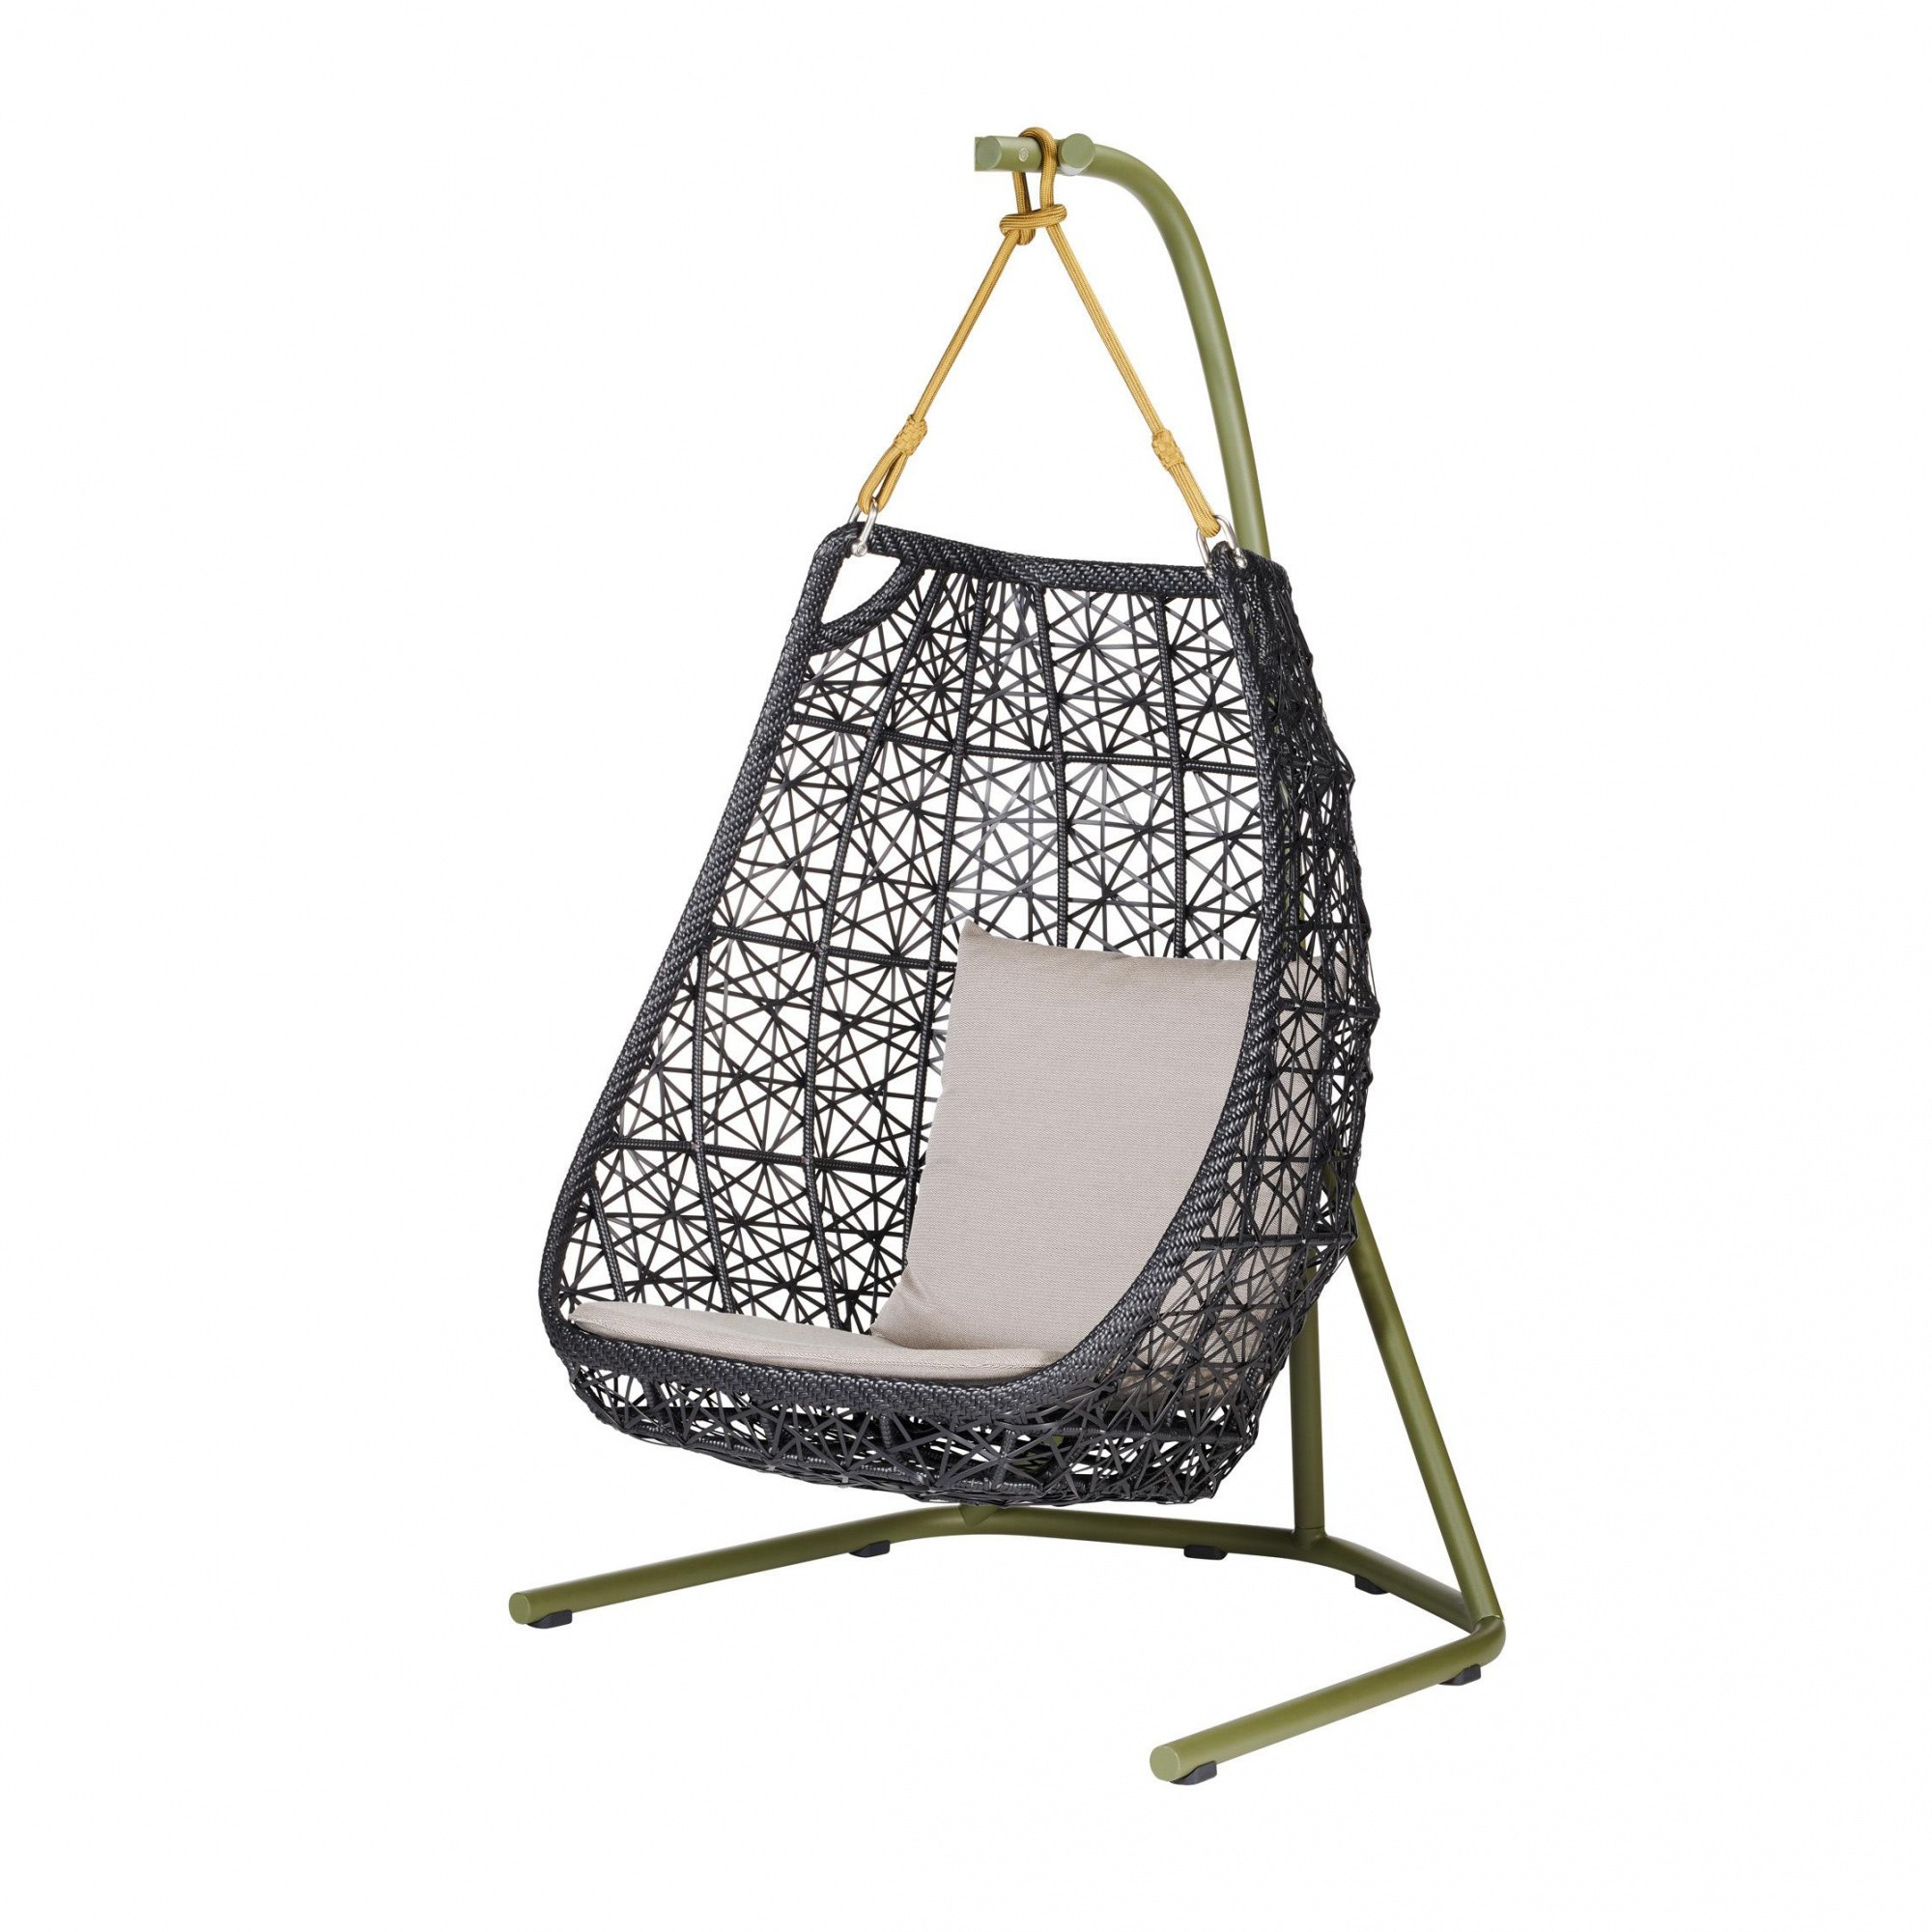 Egg Swing Chair Kettal Maia Egg Swing Hanging Chair Ambientedirect